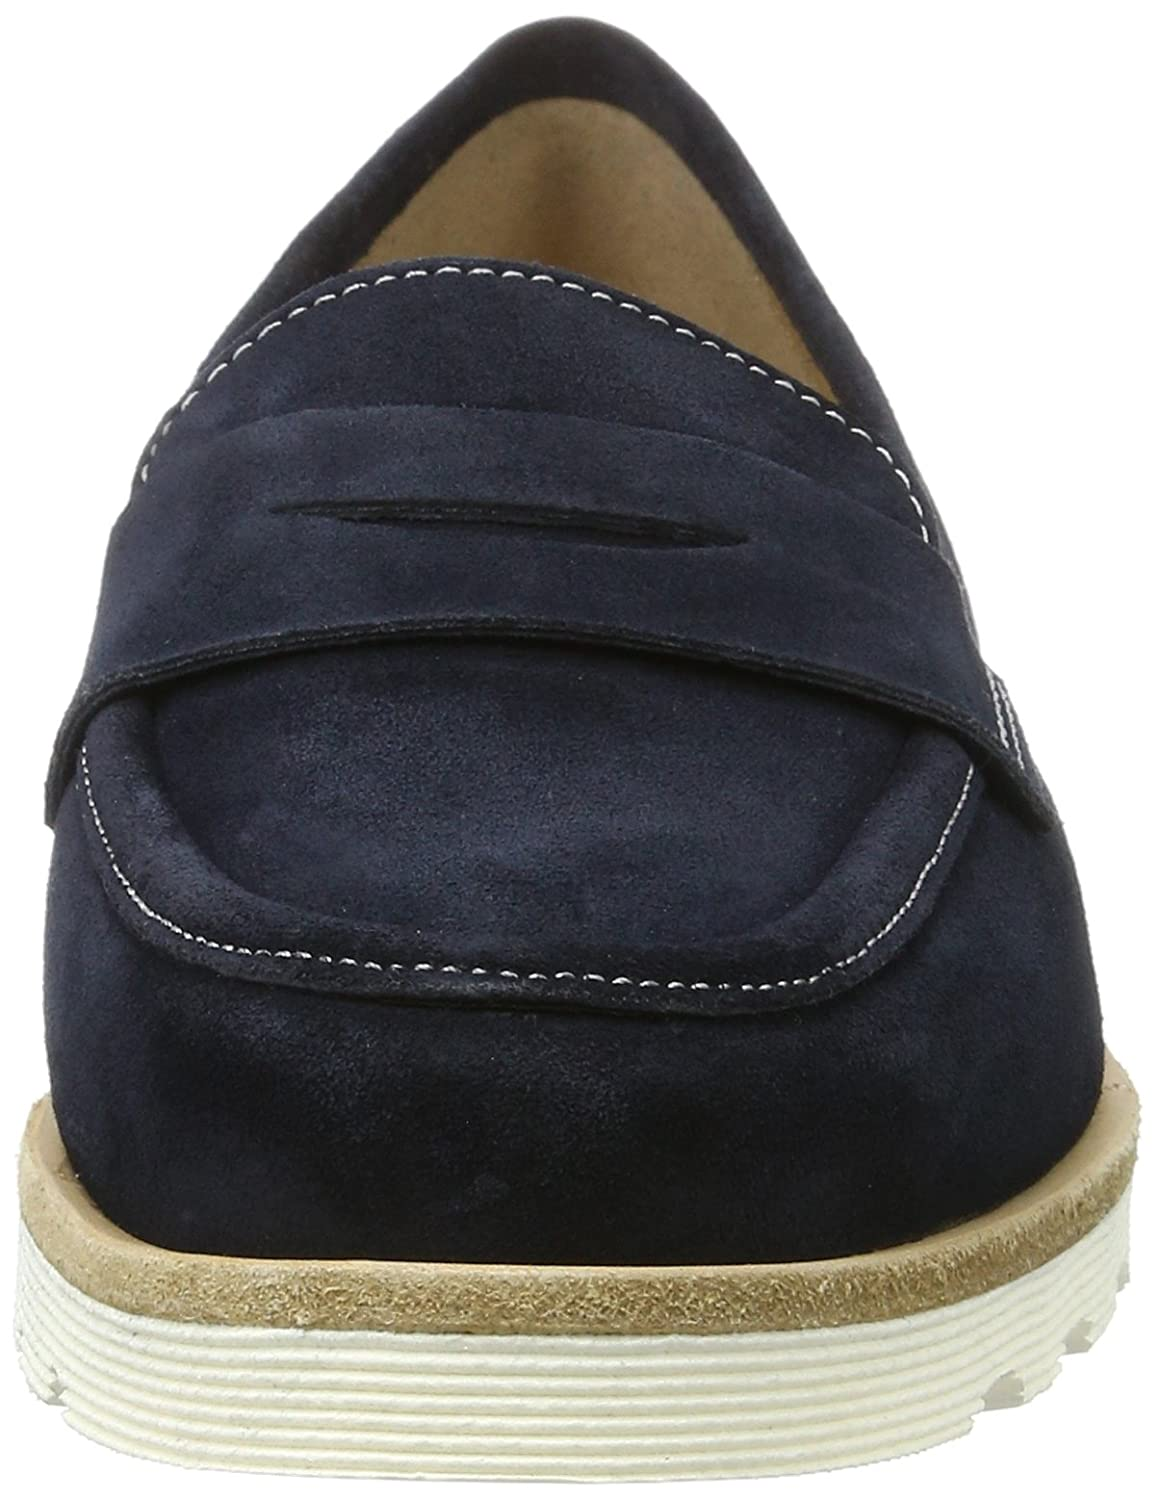 Sioux Damen Damen Sioux Velia Slipper Blau (Navy) b8be38